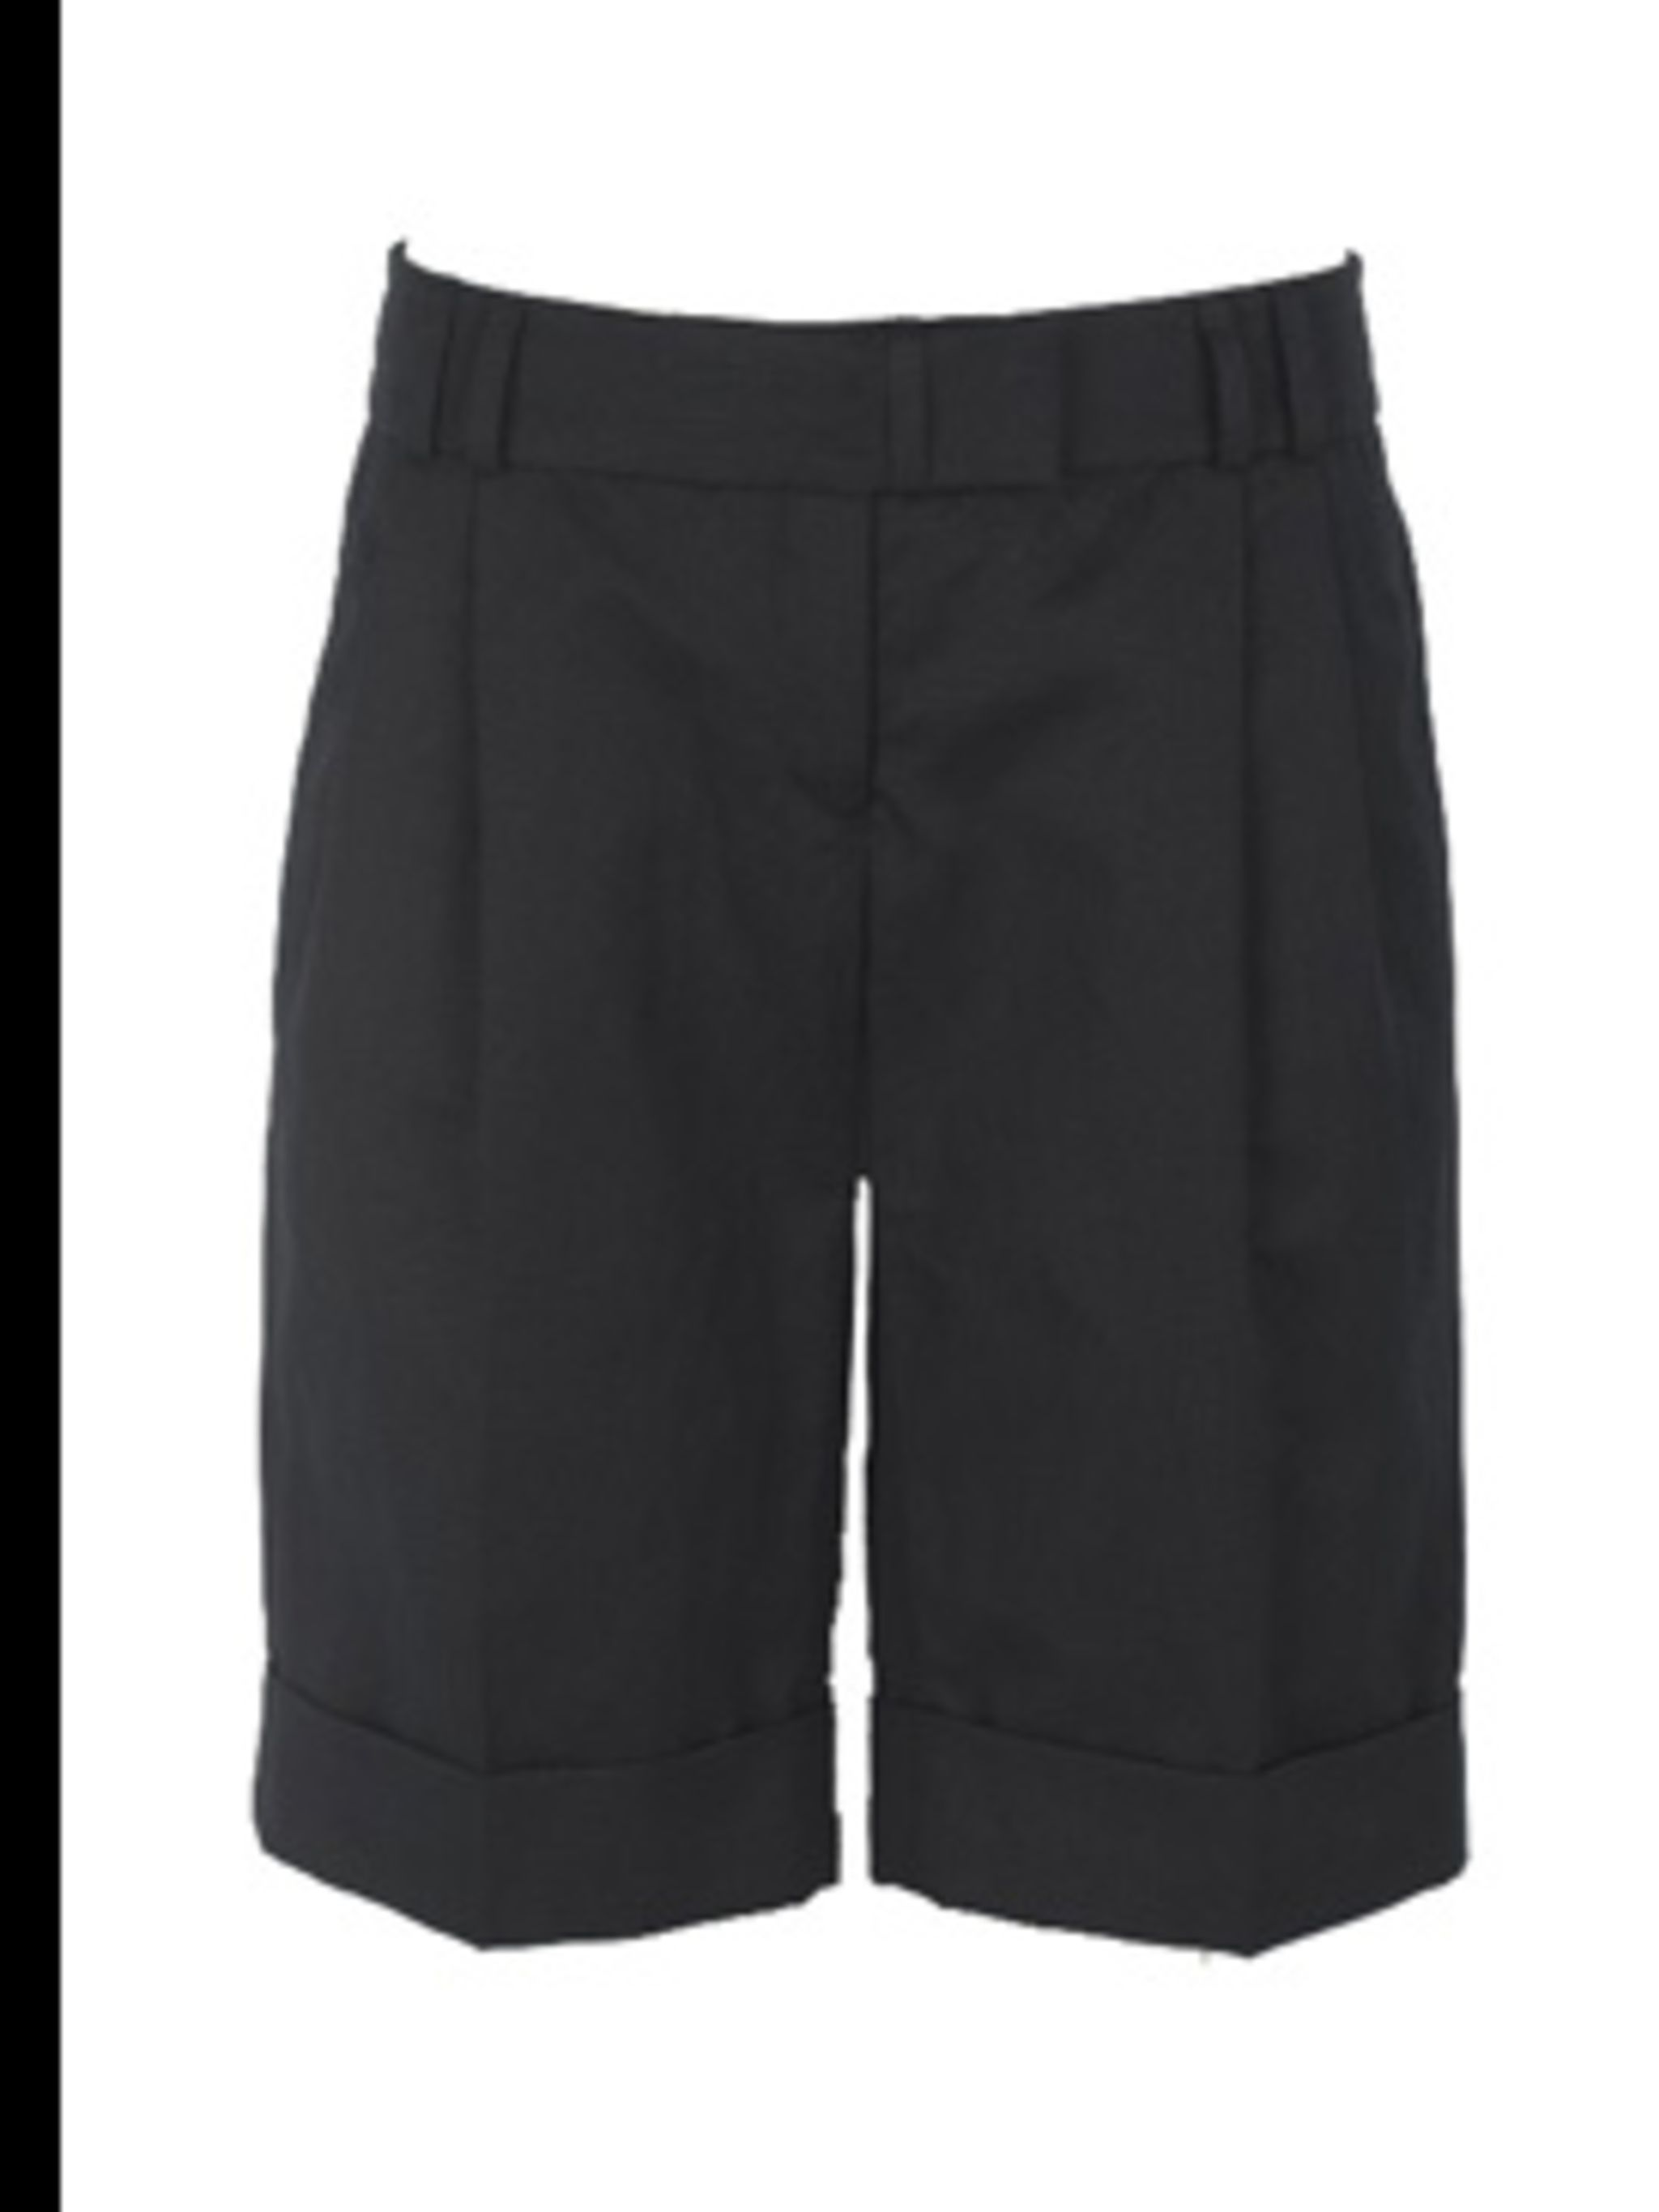 "<p>Black cuffed shorts, £65, by <a href=""http://www.tedbaker.com/shop.do?cID=591&amp&#x3B;pID=5864"">Ted Baker</a></p>"